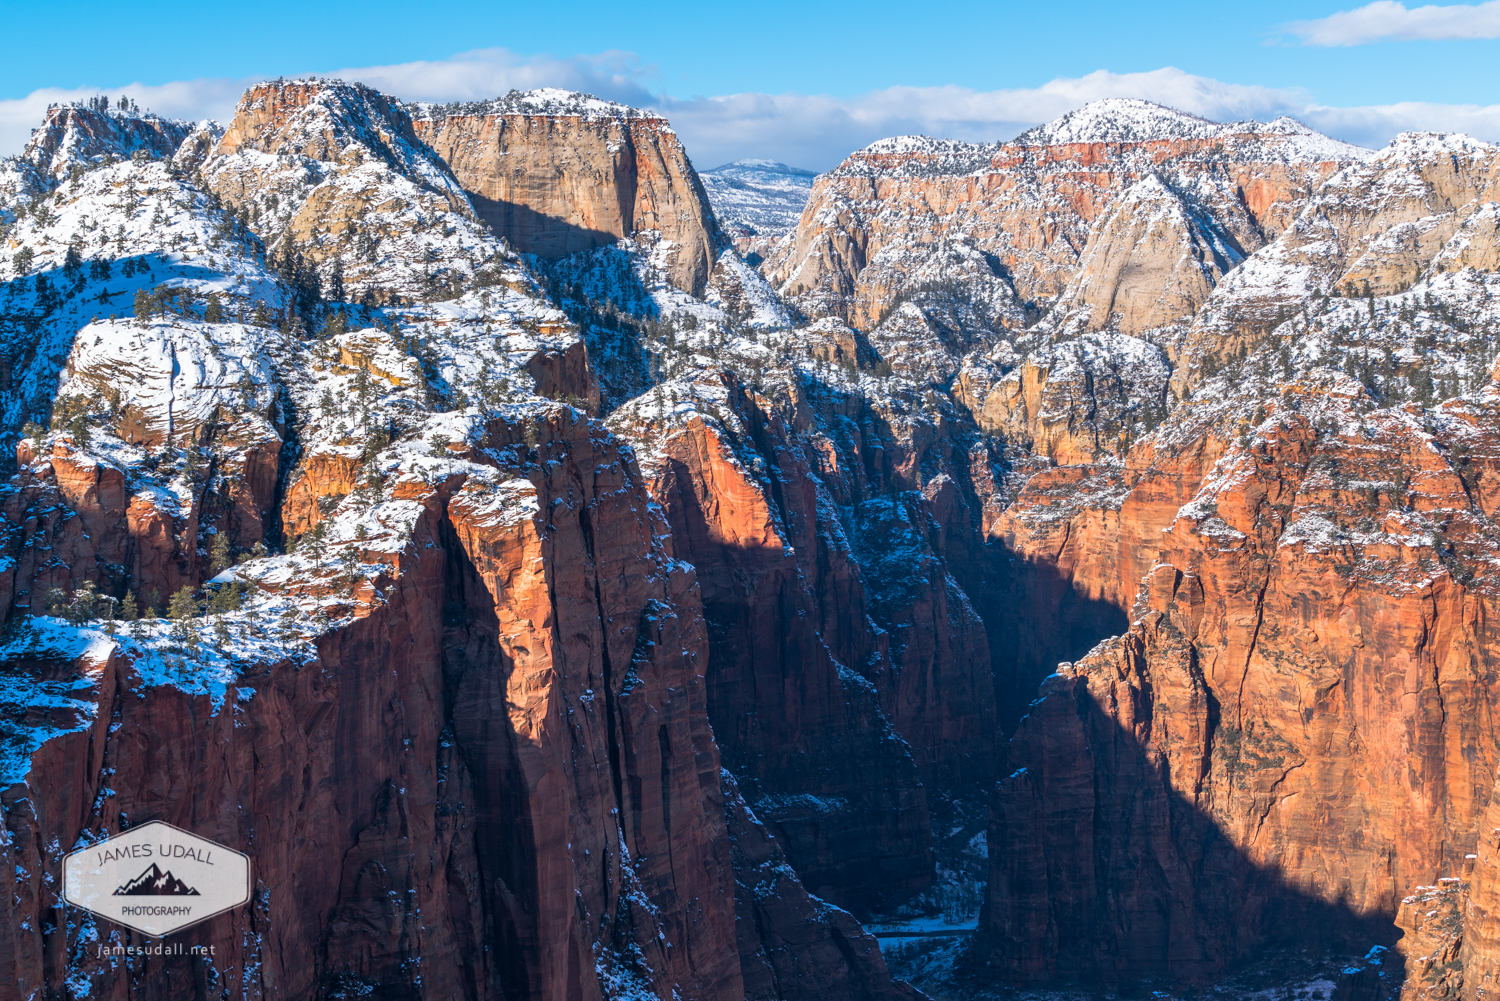 Snowy Cliffs of Zion National Park